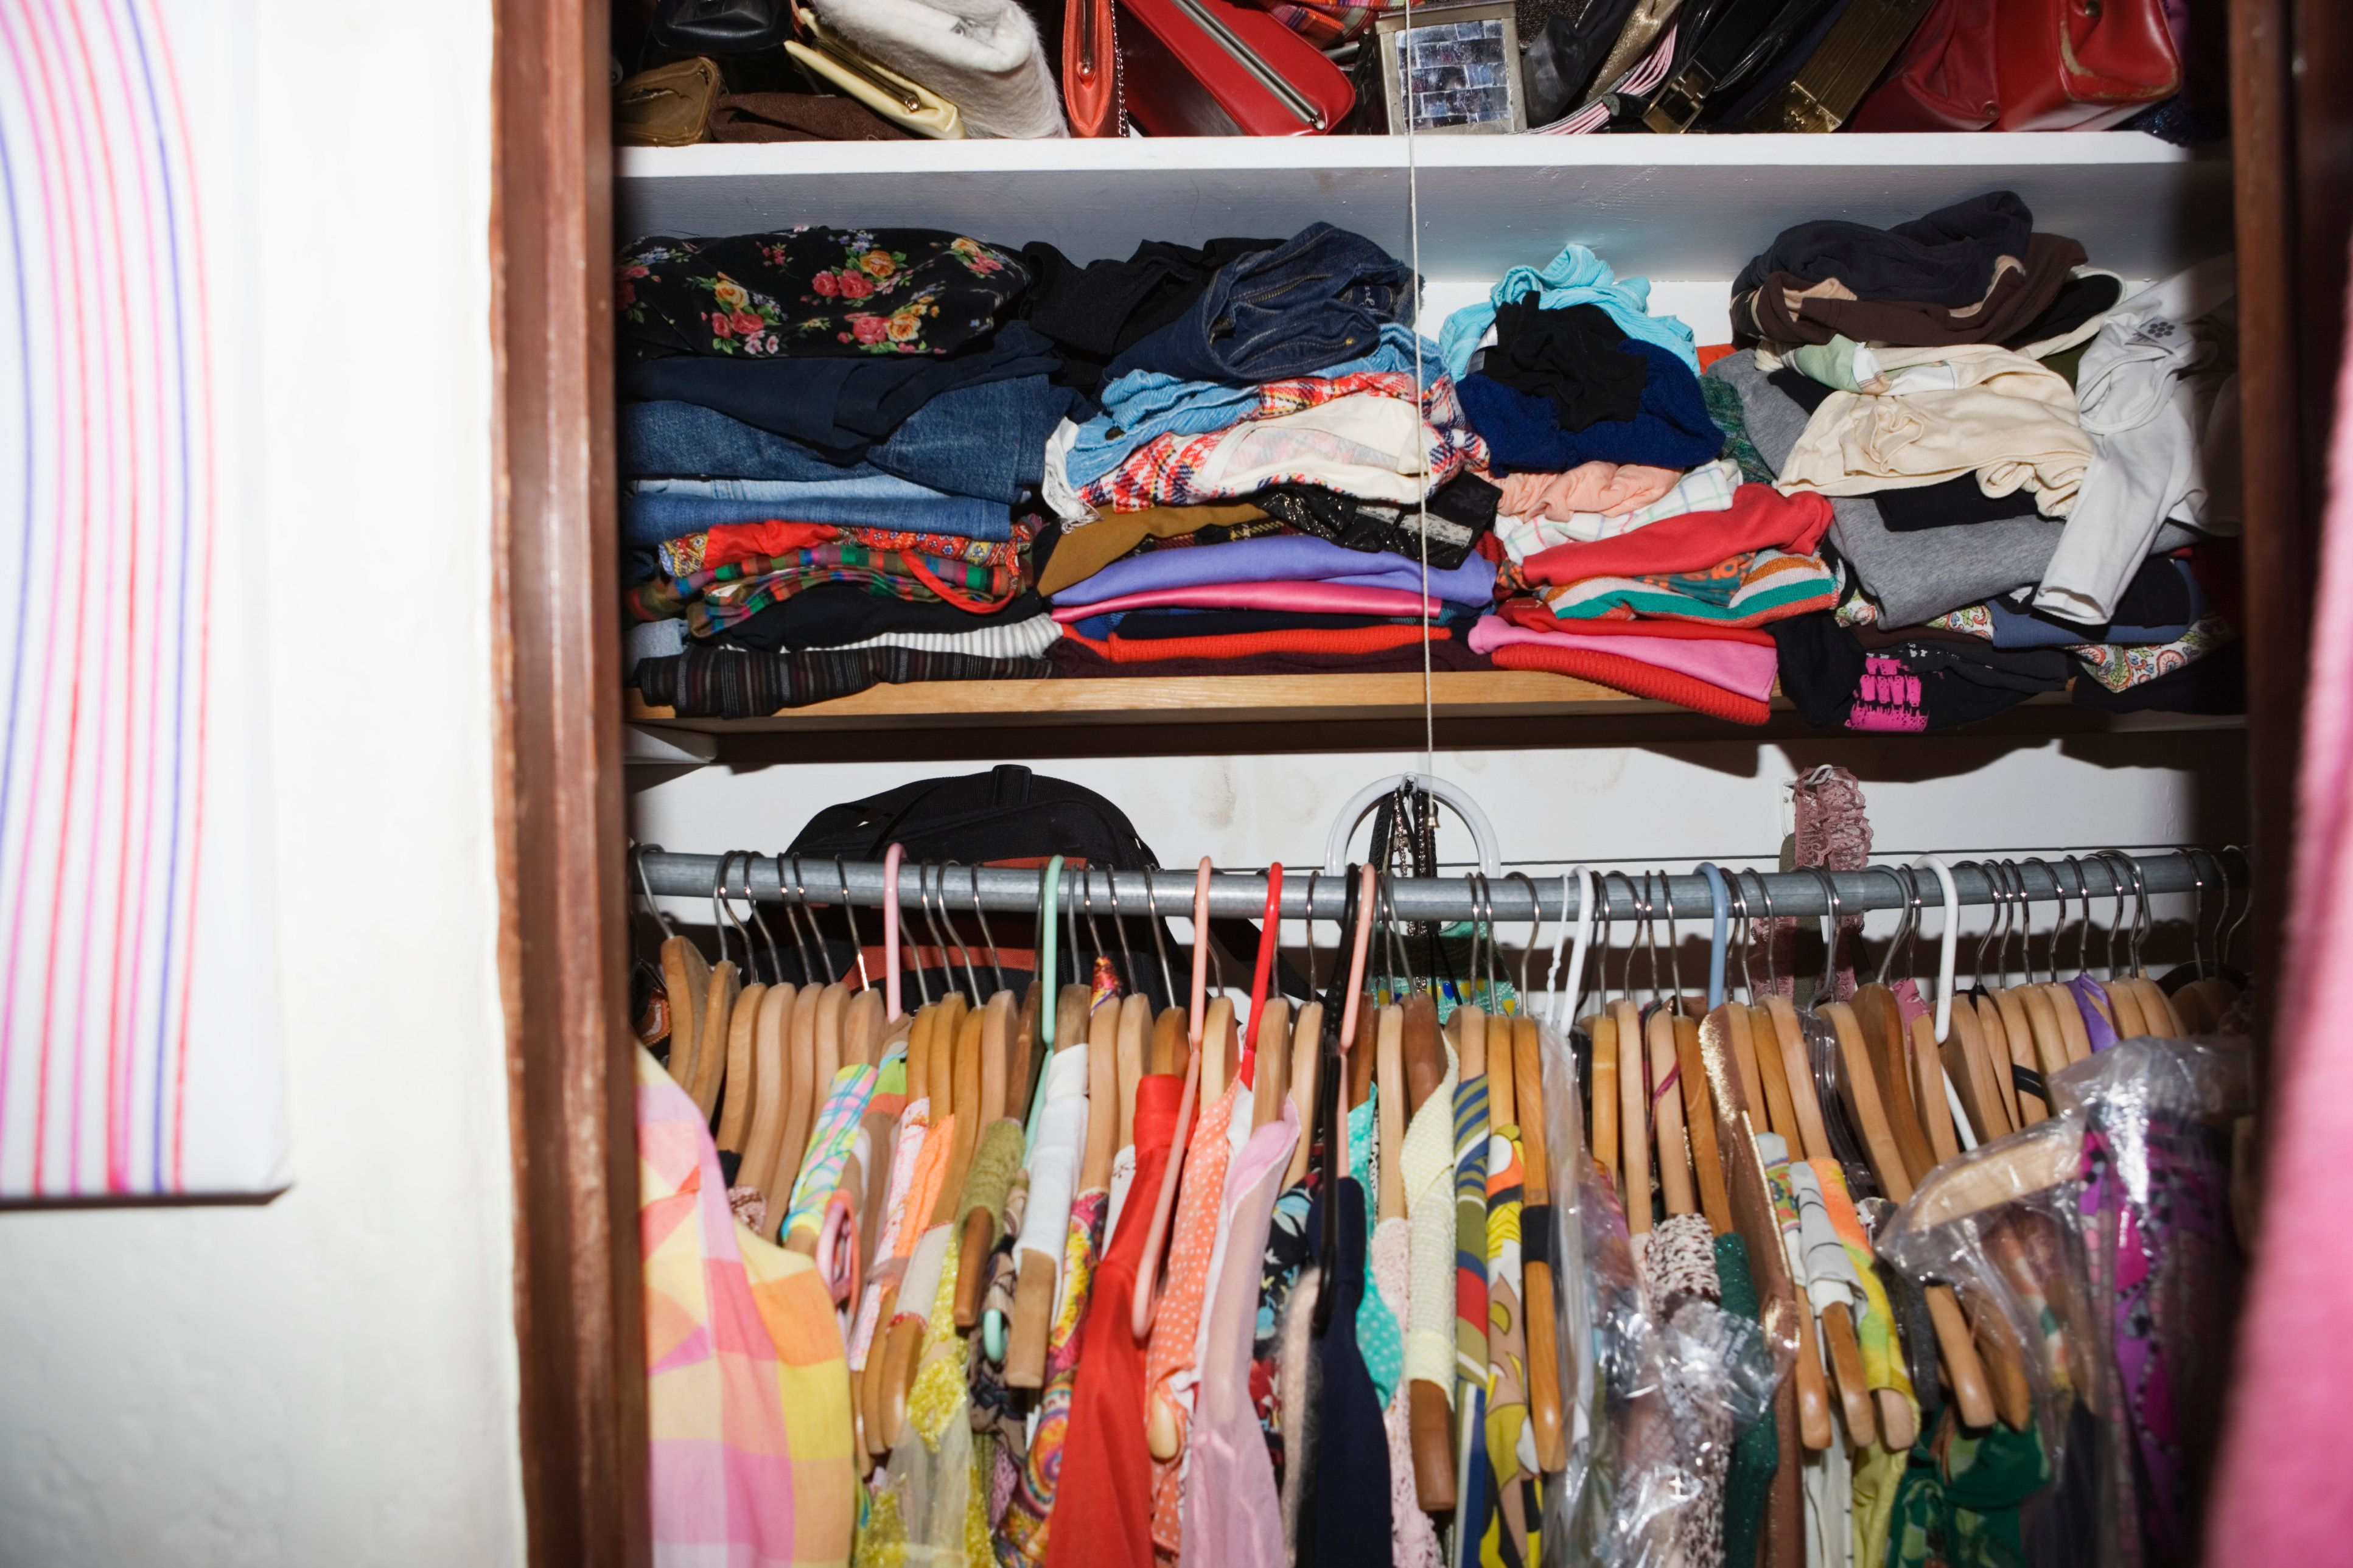 Closet full of clothing